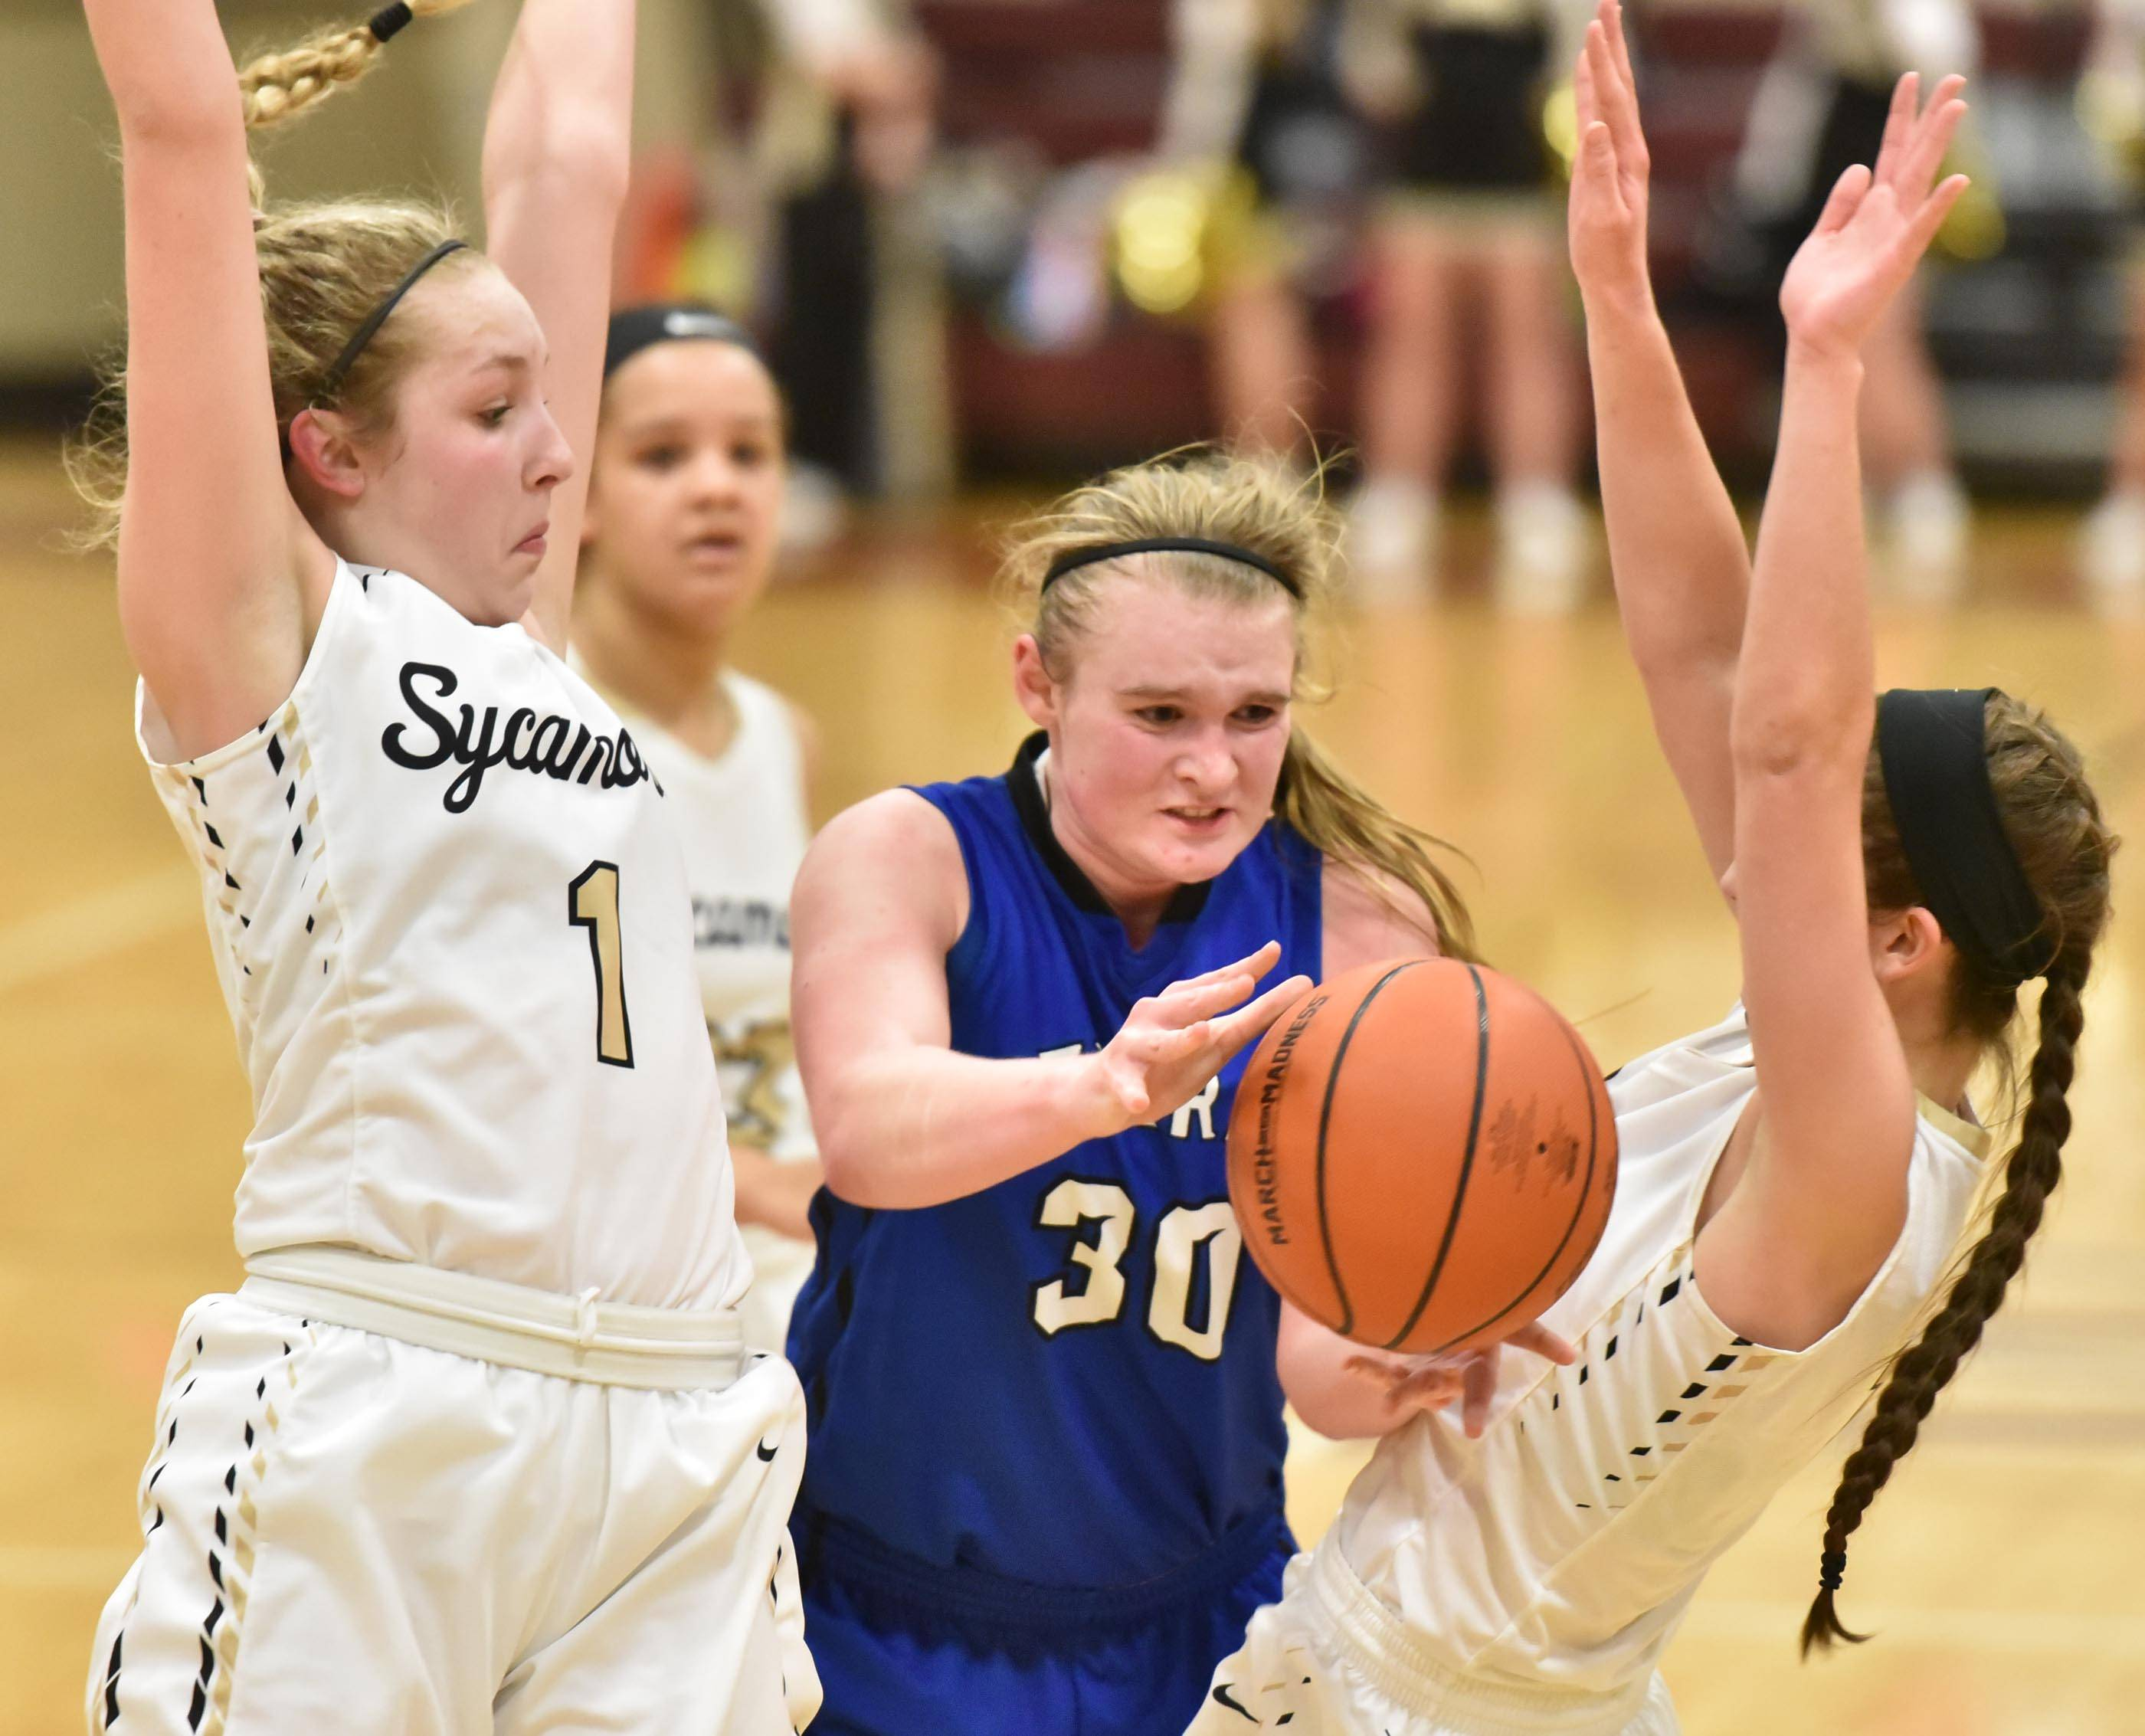 Burlington Central's Kathryn Schmidt passes the ball under pressure from Sycamore's Kylie Feuerbach and Taryn Mathey in the girls basketball regional playoff game at Wheaton Academy Wednesday.